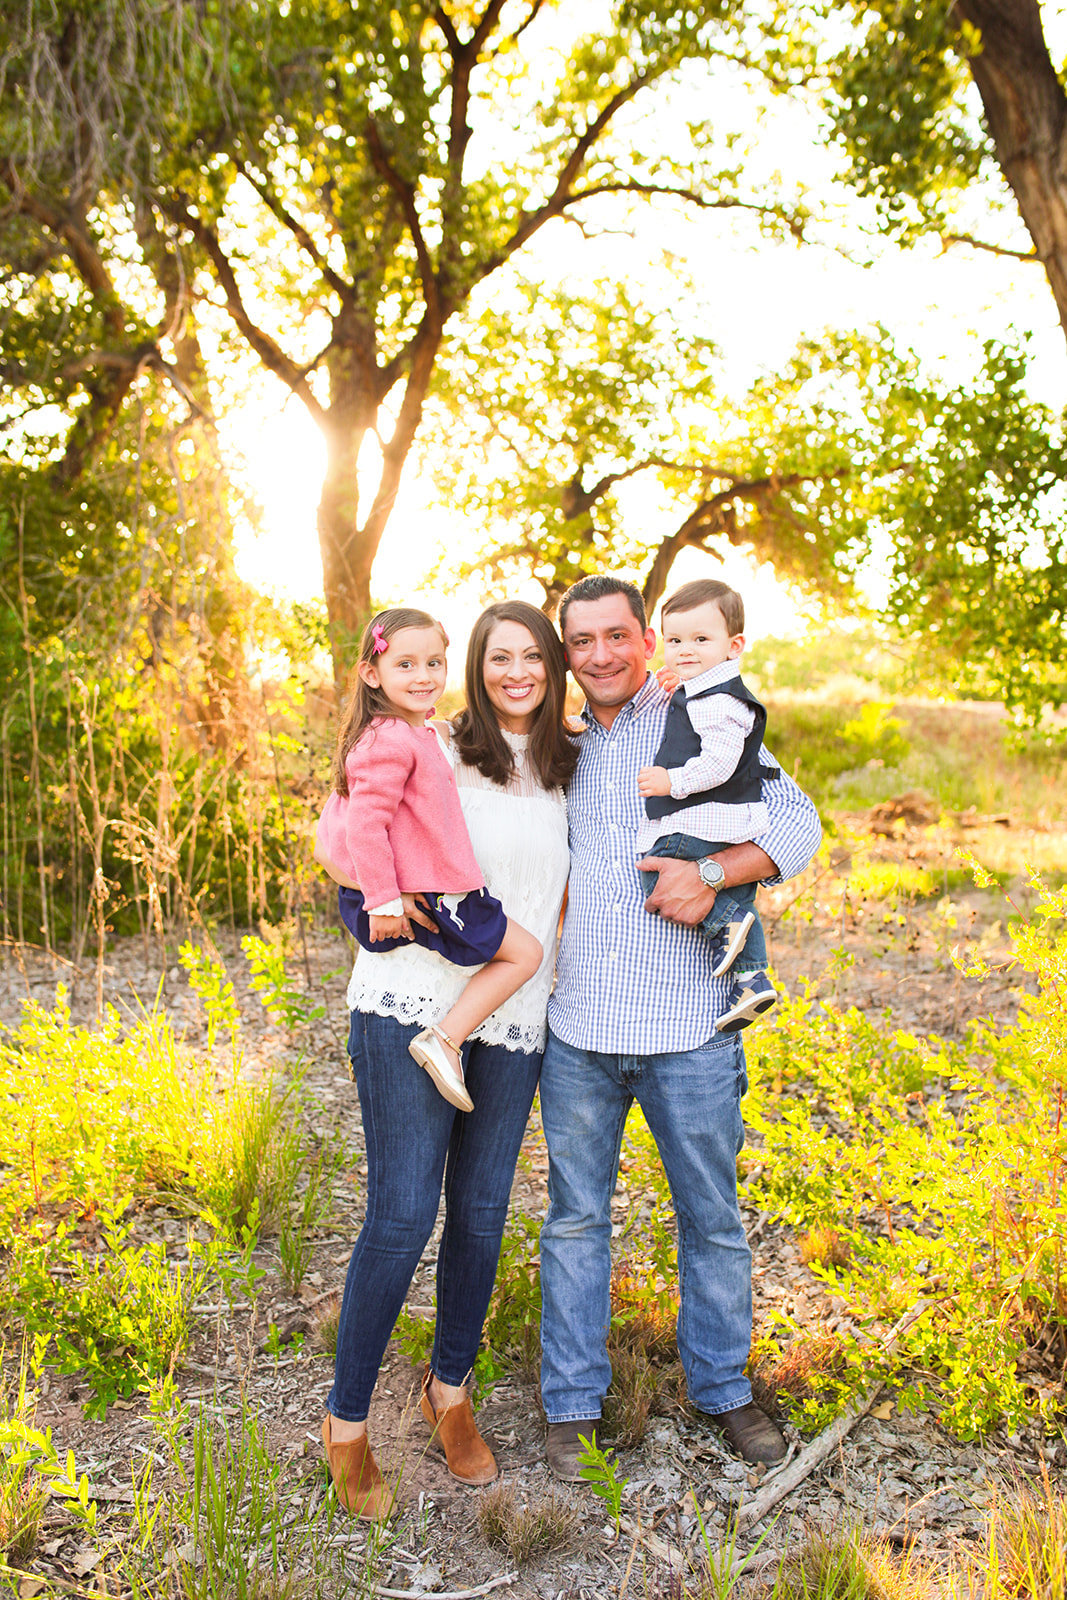 Albuquerque Family Bosque Photographer_www.tylerbrooke.com_Kate Kauffman_003